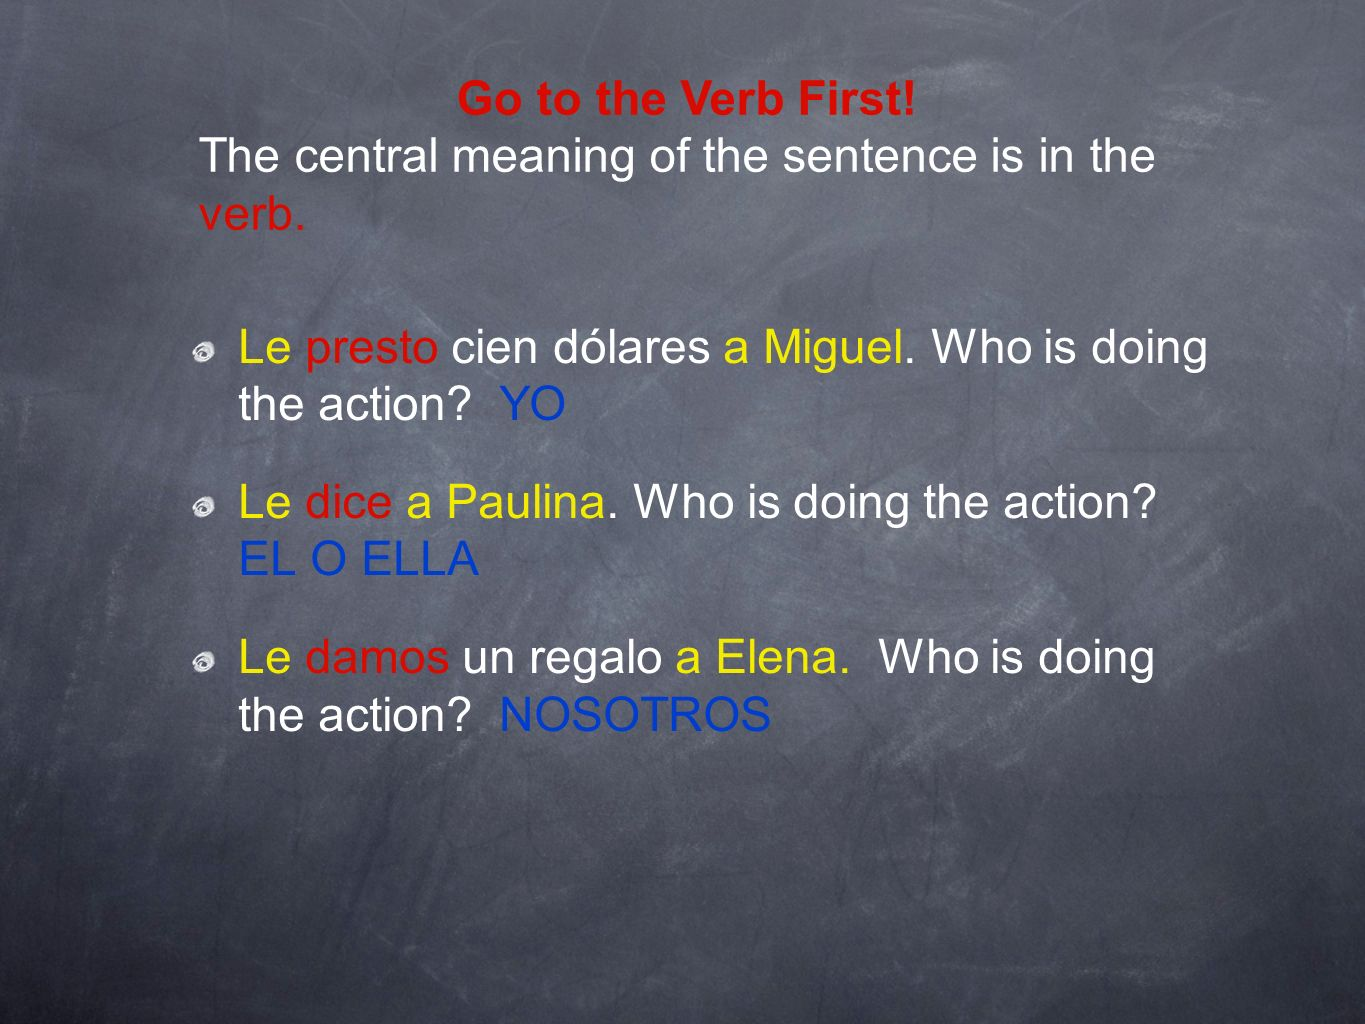 Go to the Verb First! The central meaning of the sentence is in the verb. Le presto cien dólares a Miguel. Who is doing the action YO.